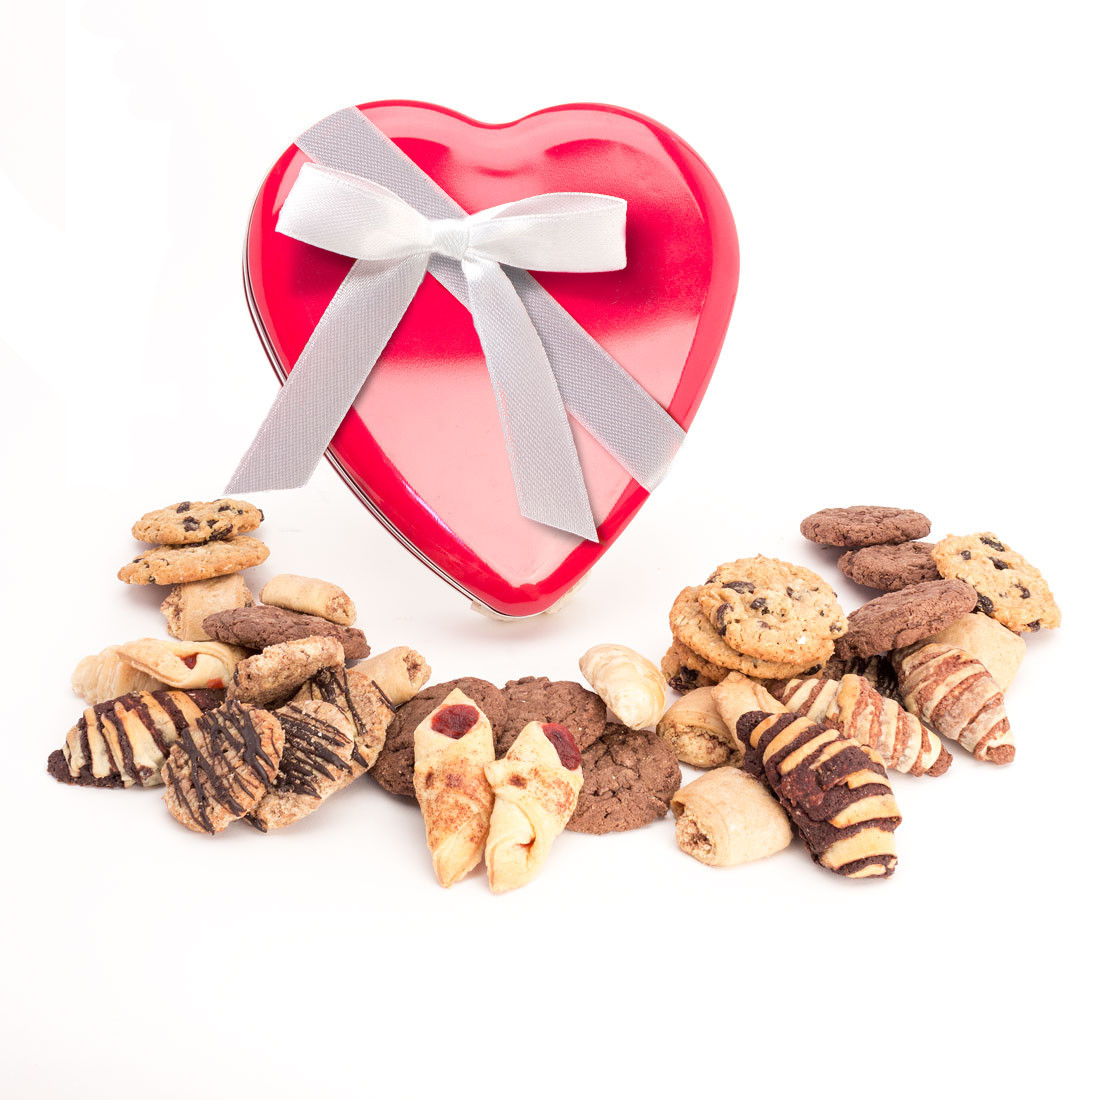 Romantic Edible Gifts | Choose from Fresh Baked Cookies Or Brownies